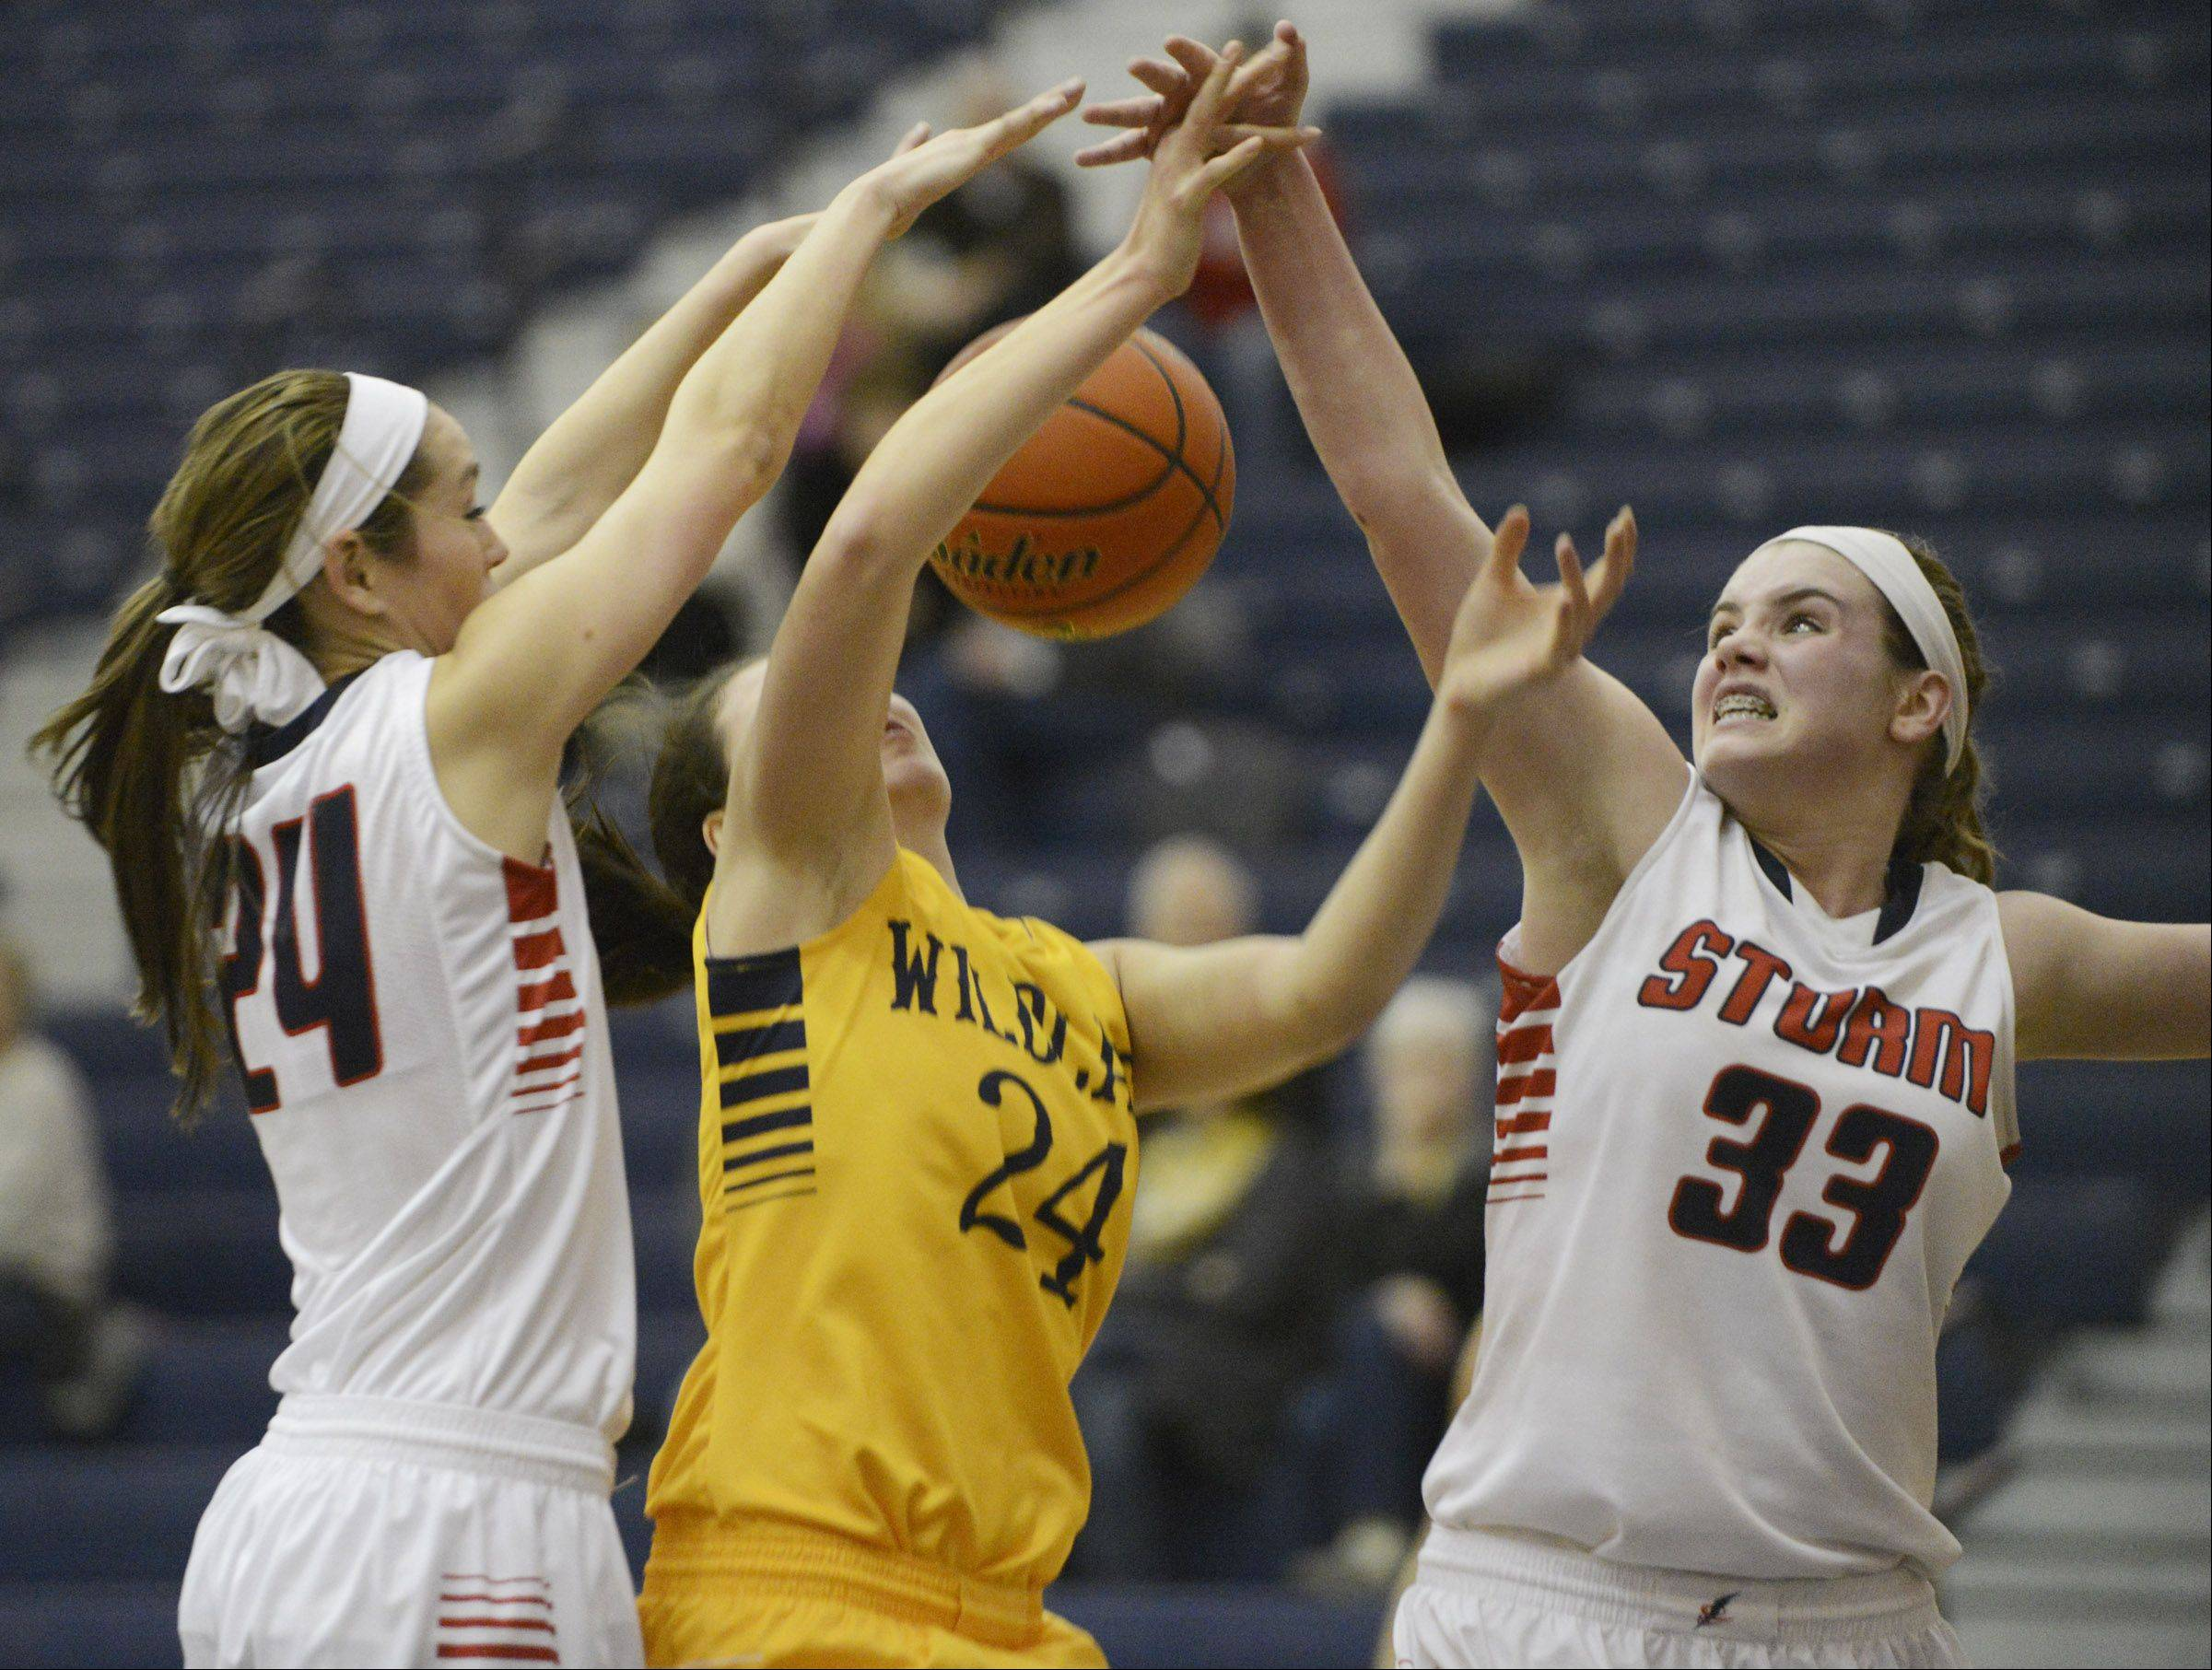 South Elgin's Kennede Miller and Mackie Kelleher, right, block Neuqua Valley's Bryce Menendez.